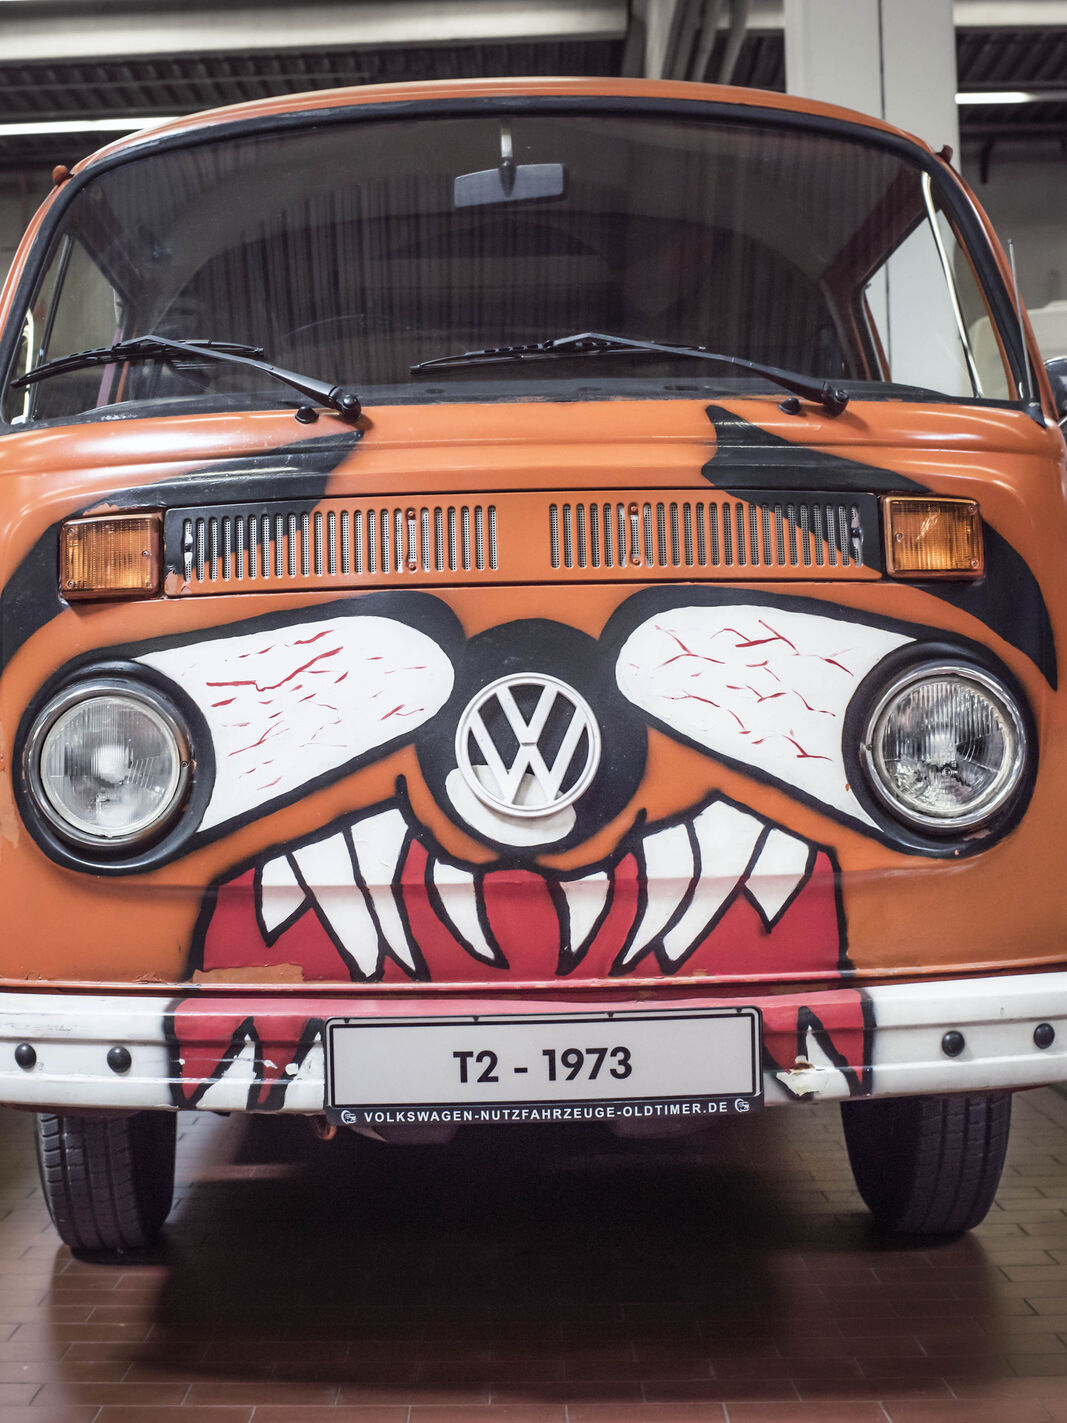 VW Bulli T2 orange Gesicht